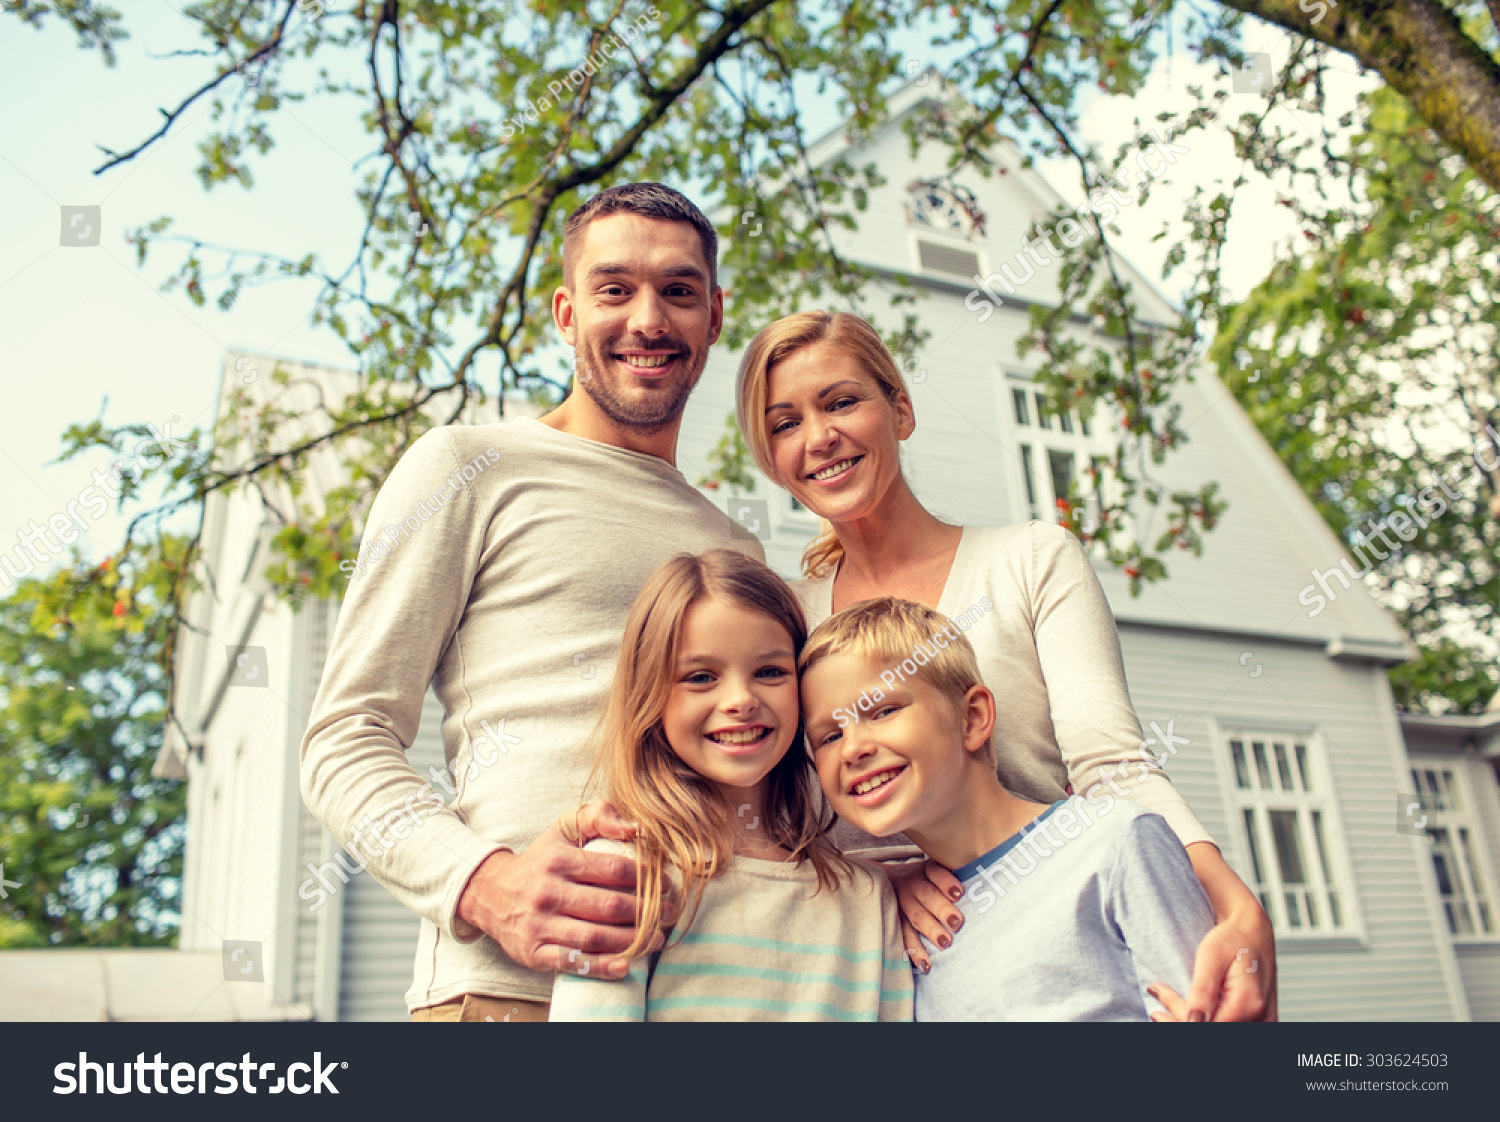 Stock photo of family in front of house